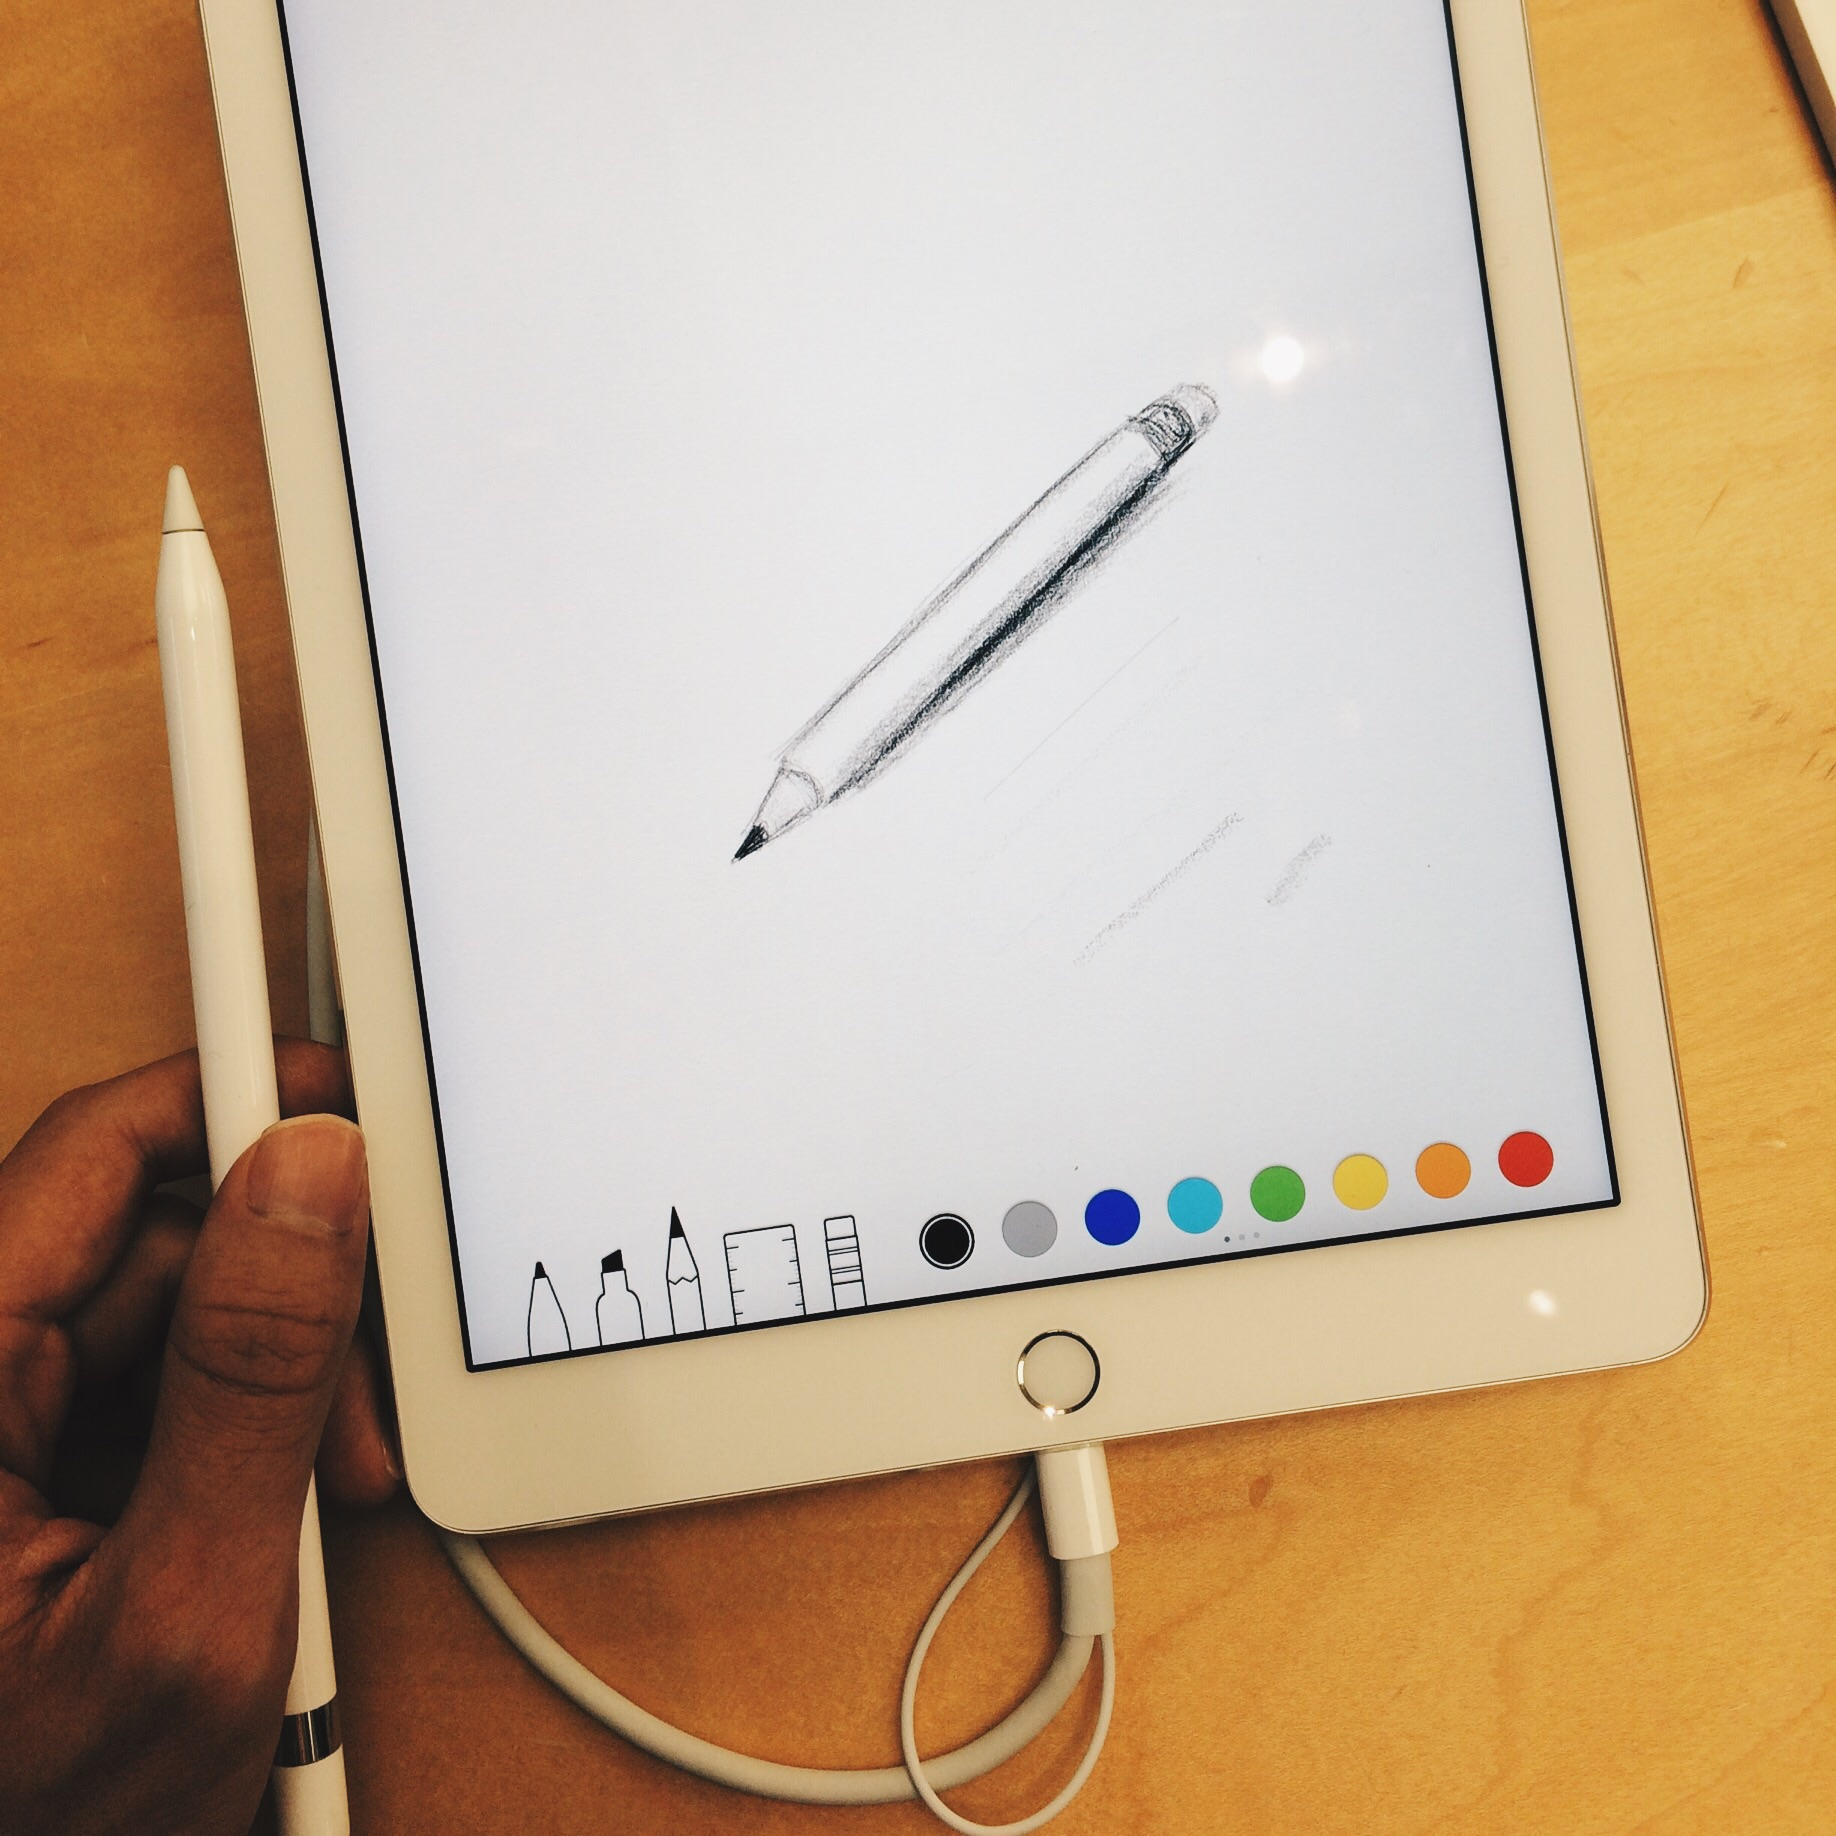 First try of drawing on iPad Pro with Apple Pencil, Apple Store